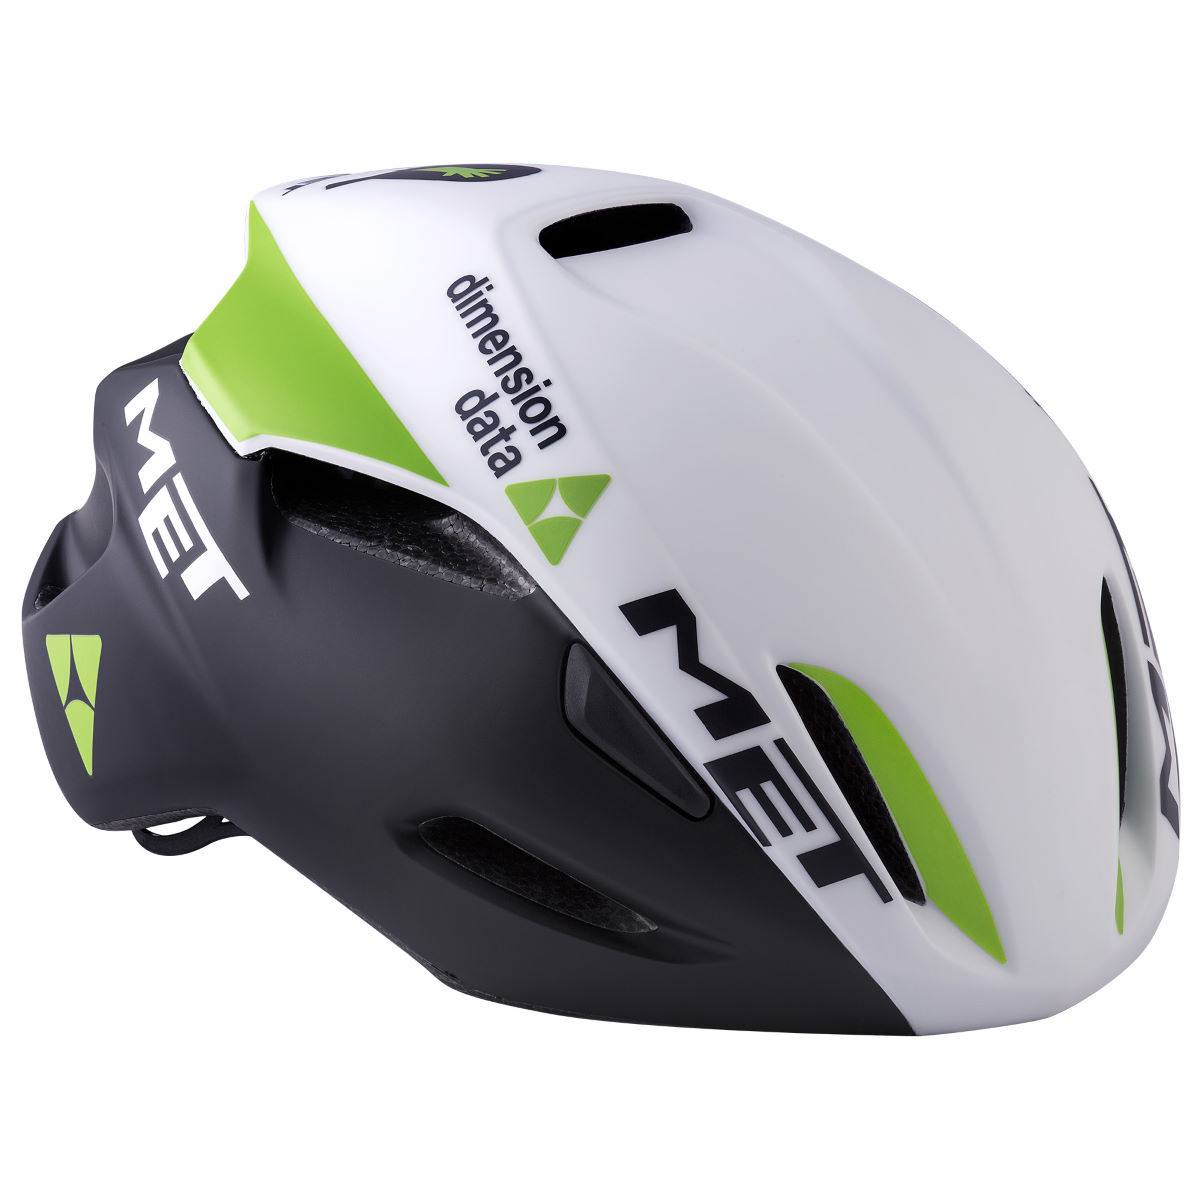 Casco de carretera MET Dimension Data Manta Aero - Cascos de carretera